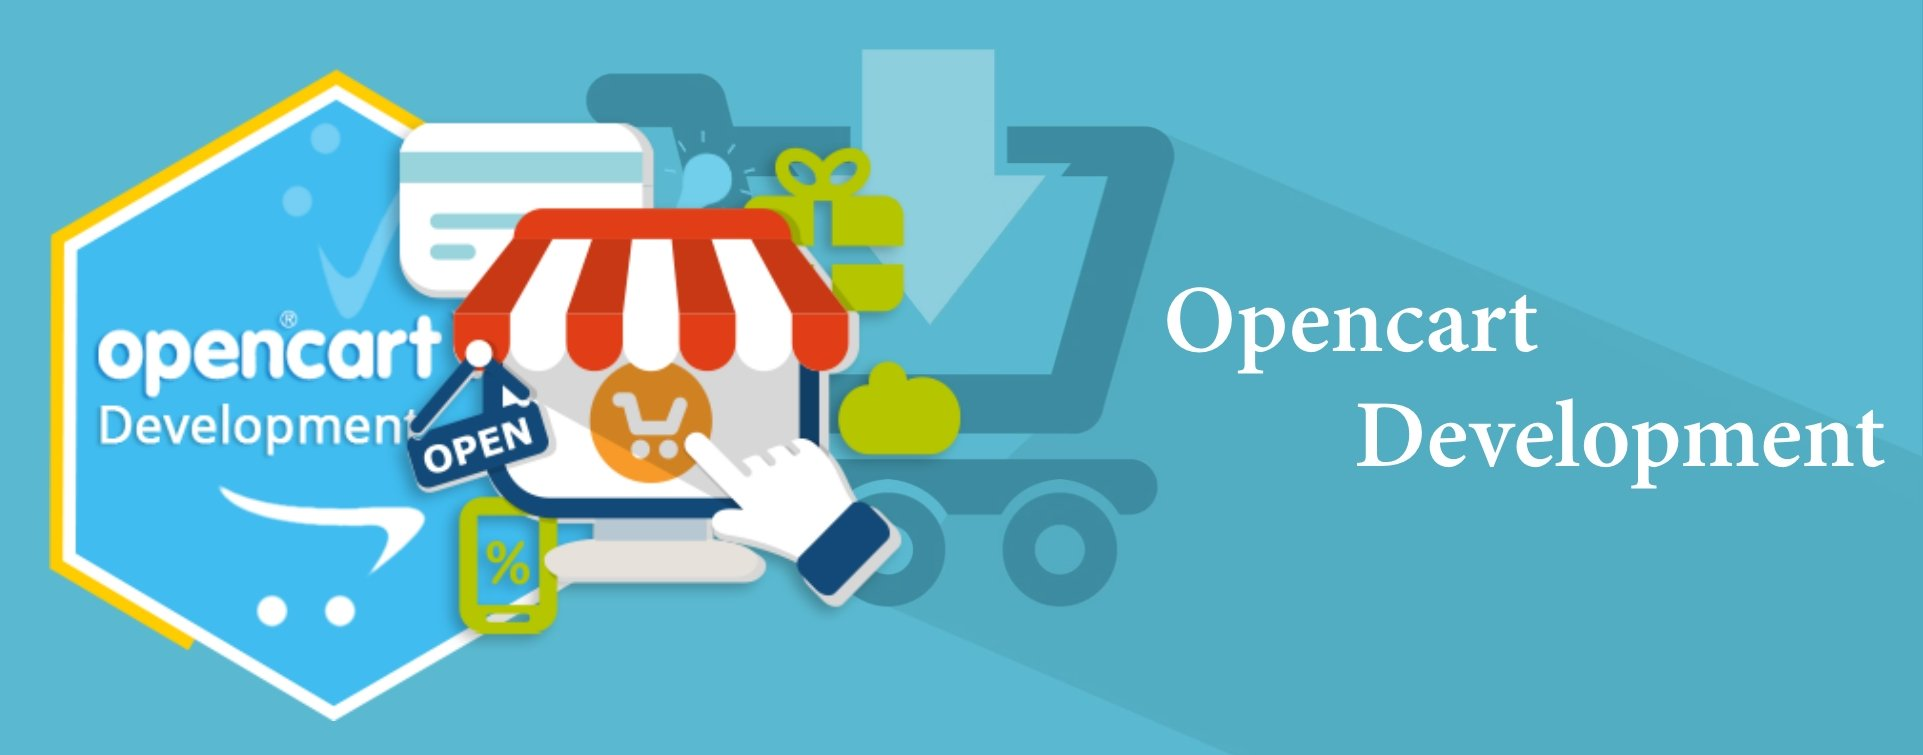 Best Opencart Development Company in Bhubaneswar